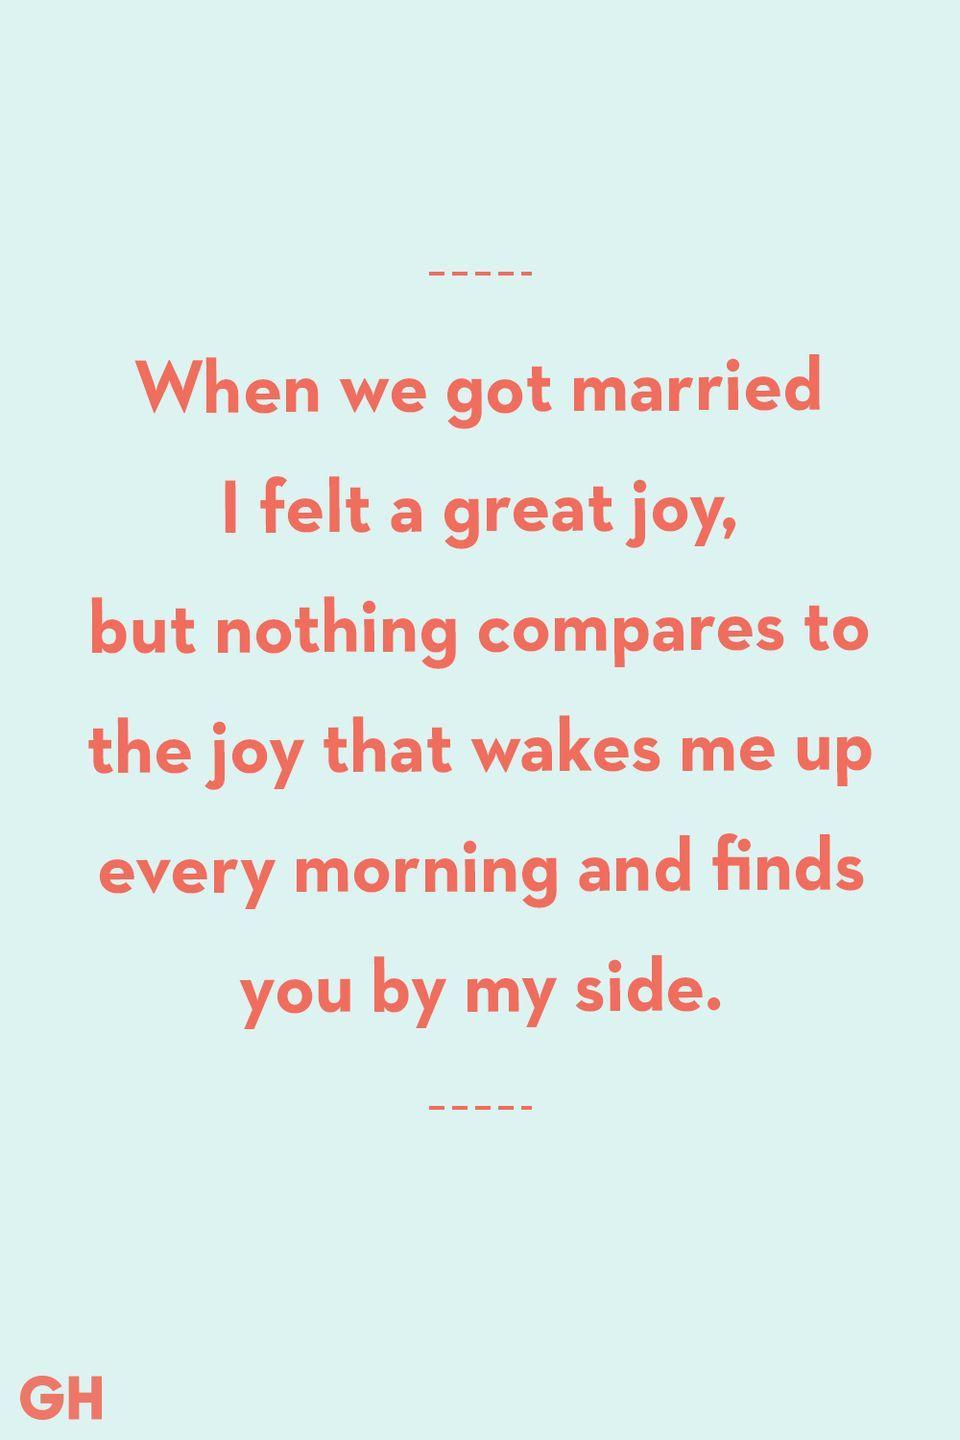 <p>When we got married I felt a great joy, but nothing compare to the joy that wakes me up every morning and finds you by my side.</p>